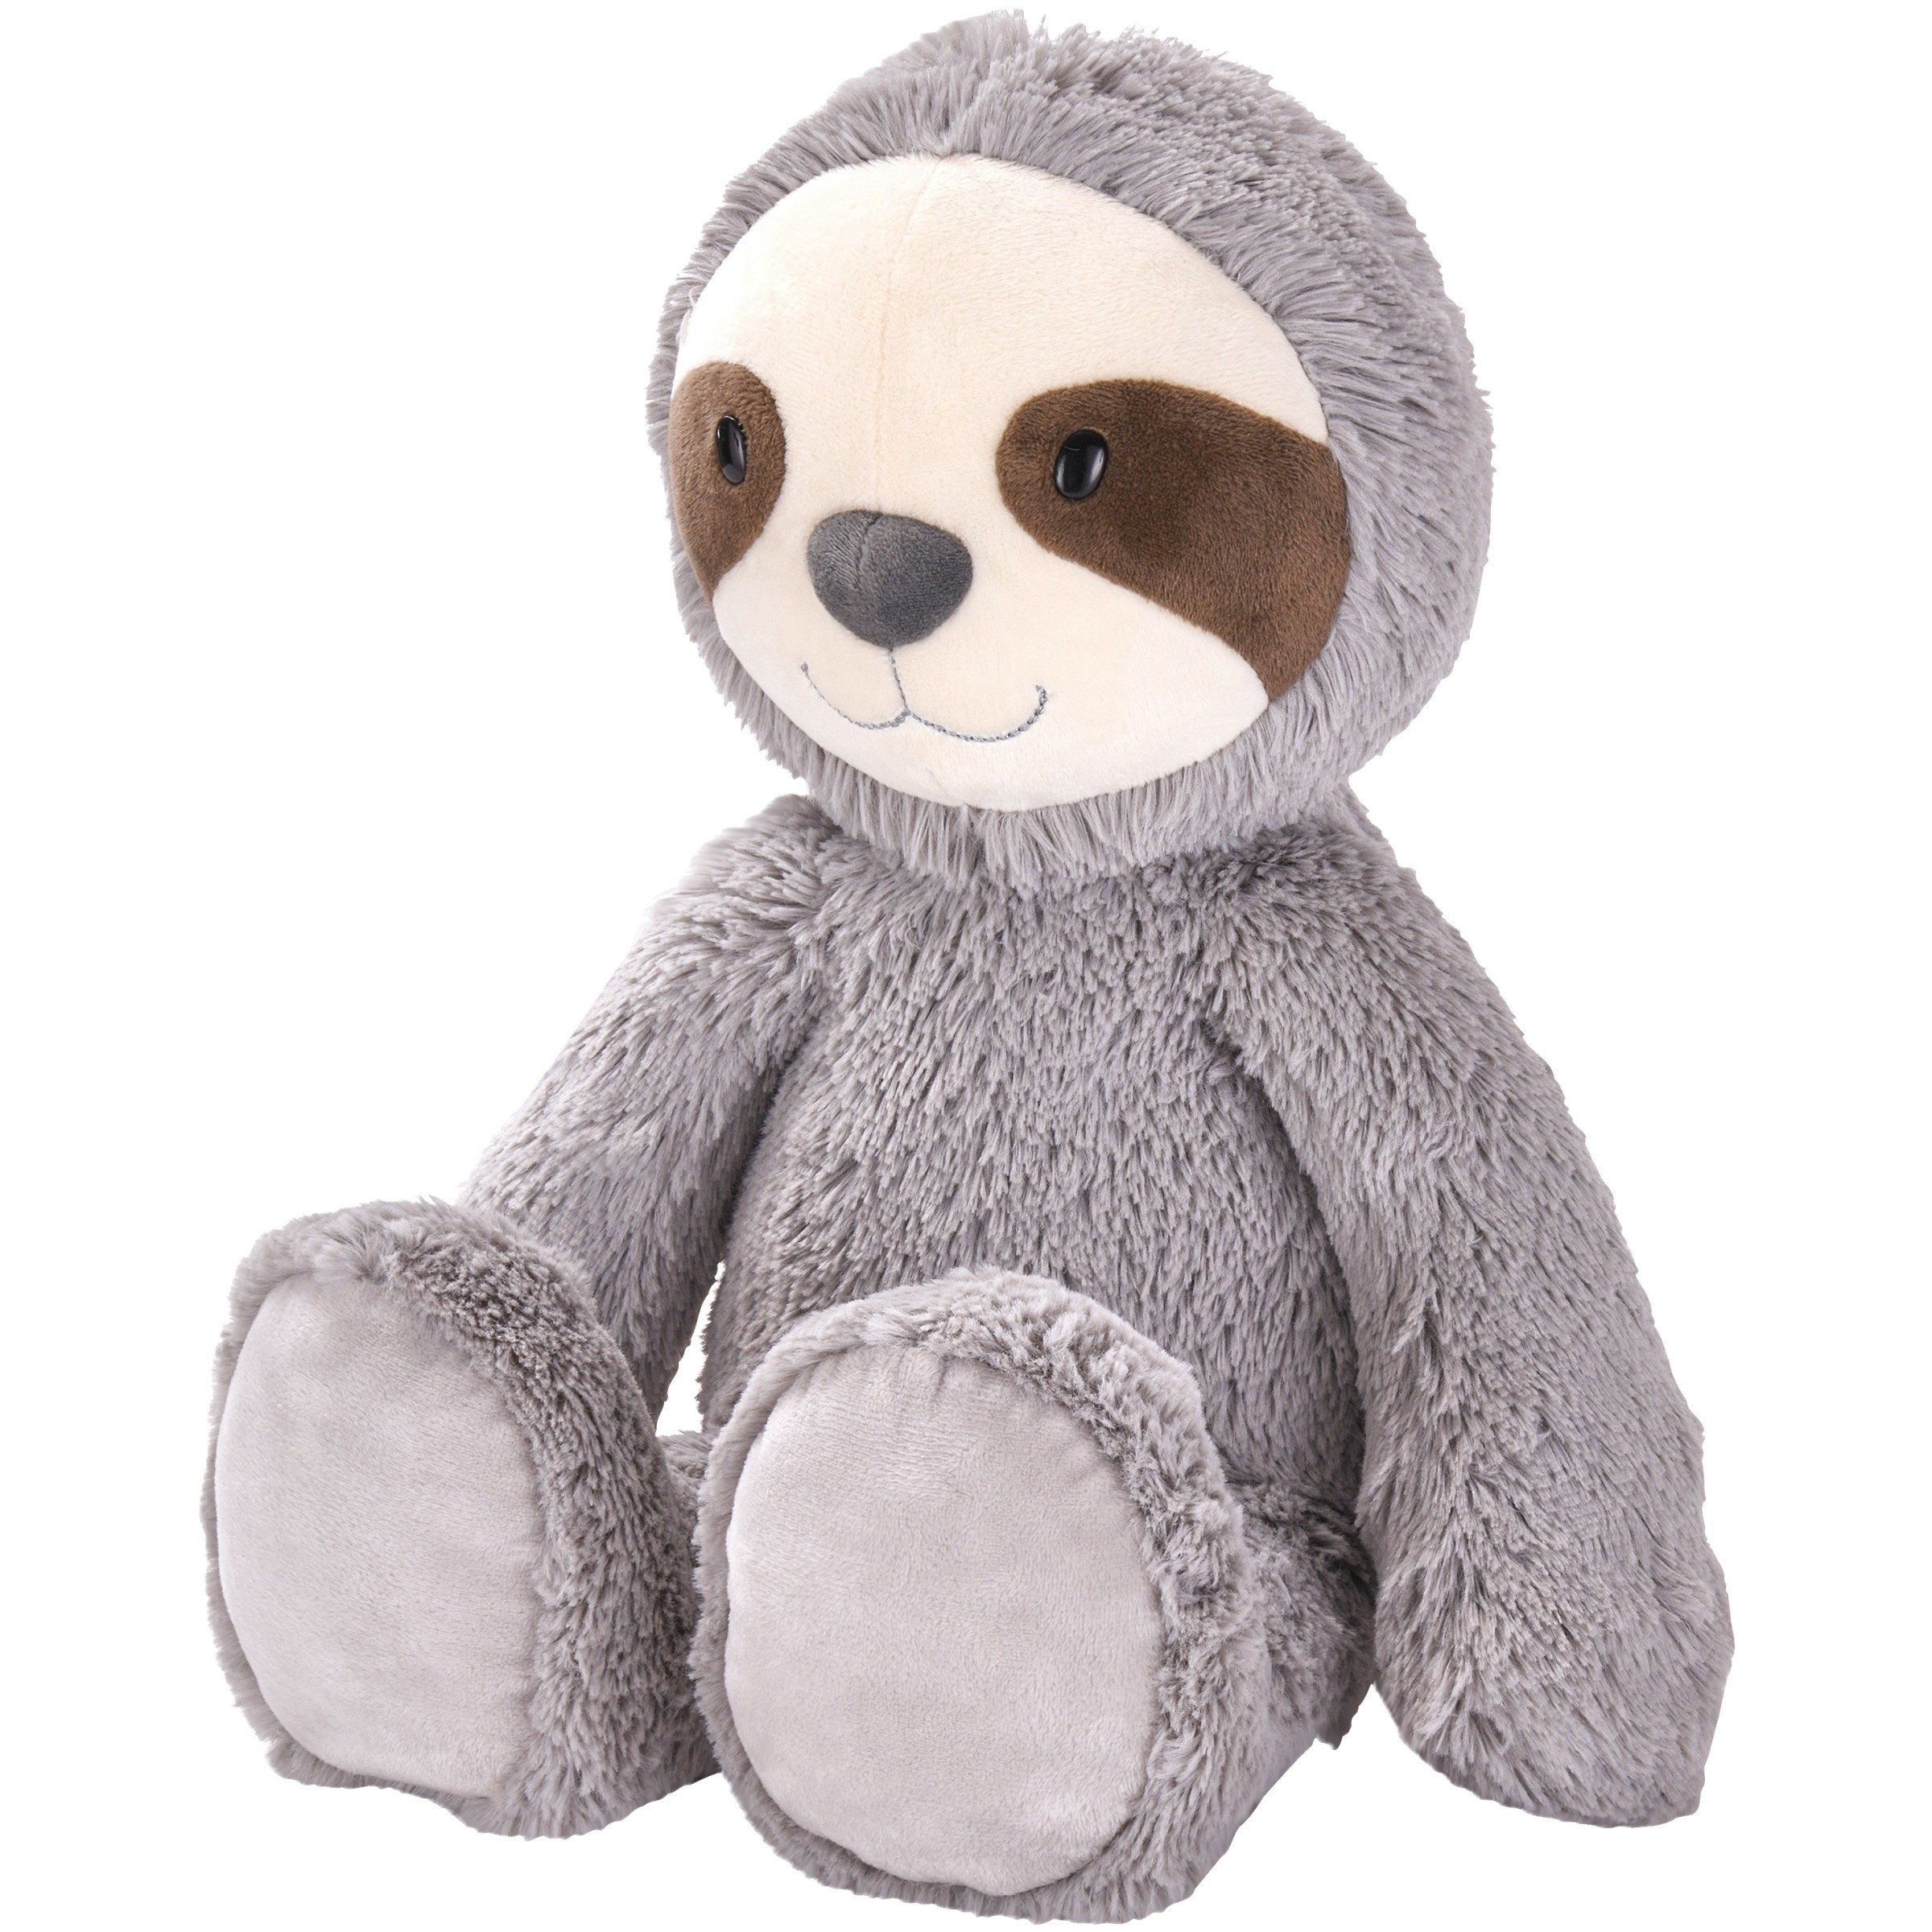 "Spark. create. imagine. 14"" large smiling sloth plush animal"